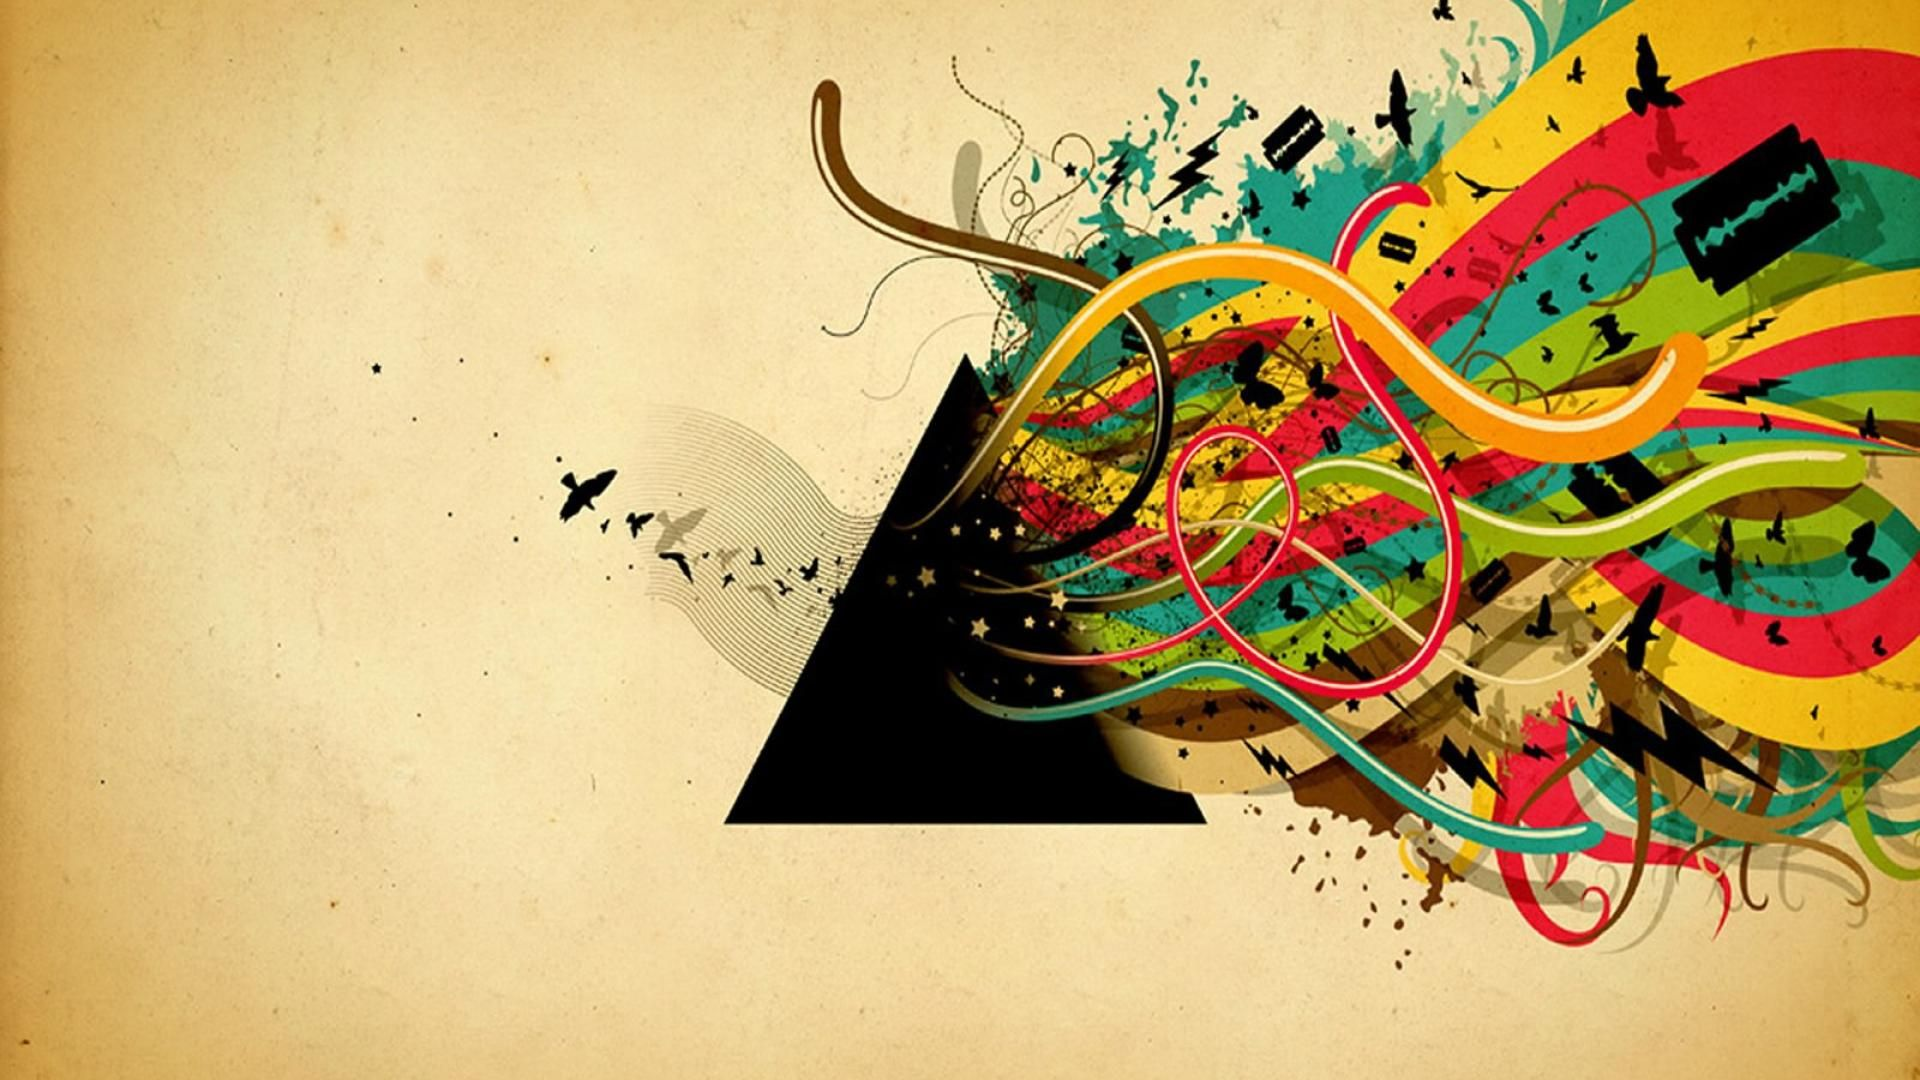 HD Abstract Arrow Wallpapers Arrow Hipster wallpaper Music 1920x1080